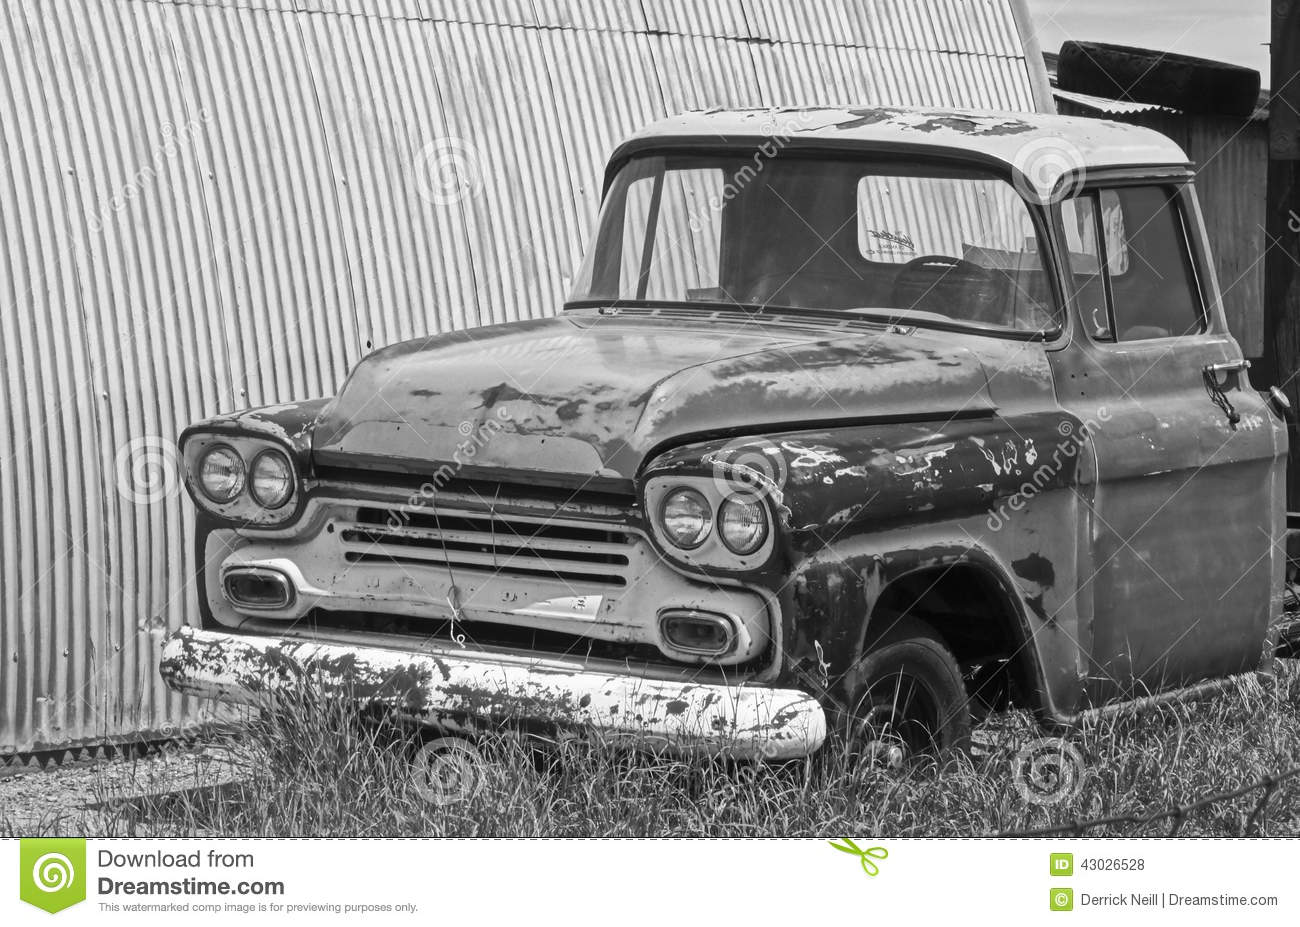 Editorial Stock Photo Old Chevy Pickup Truck Junkyard Palominas Arizona July Palominas Arizona July Near Sierra Vista Arizona Abandoned Image43026528 further 2486462 together with 318717 Hurricane Sandy Jersey Shore additionally Royalty Free Stock Photo Vista House Crown Point Oregon Image15695815 as well Abstract Pink Wallpapers. on old cars vista business cards